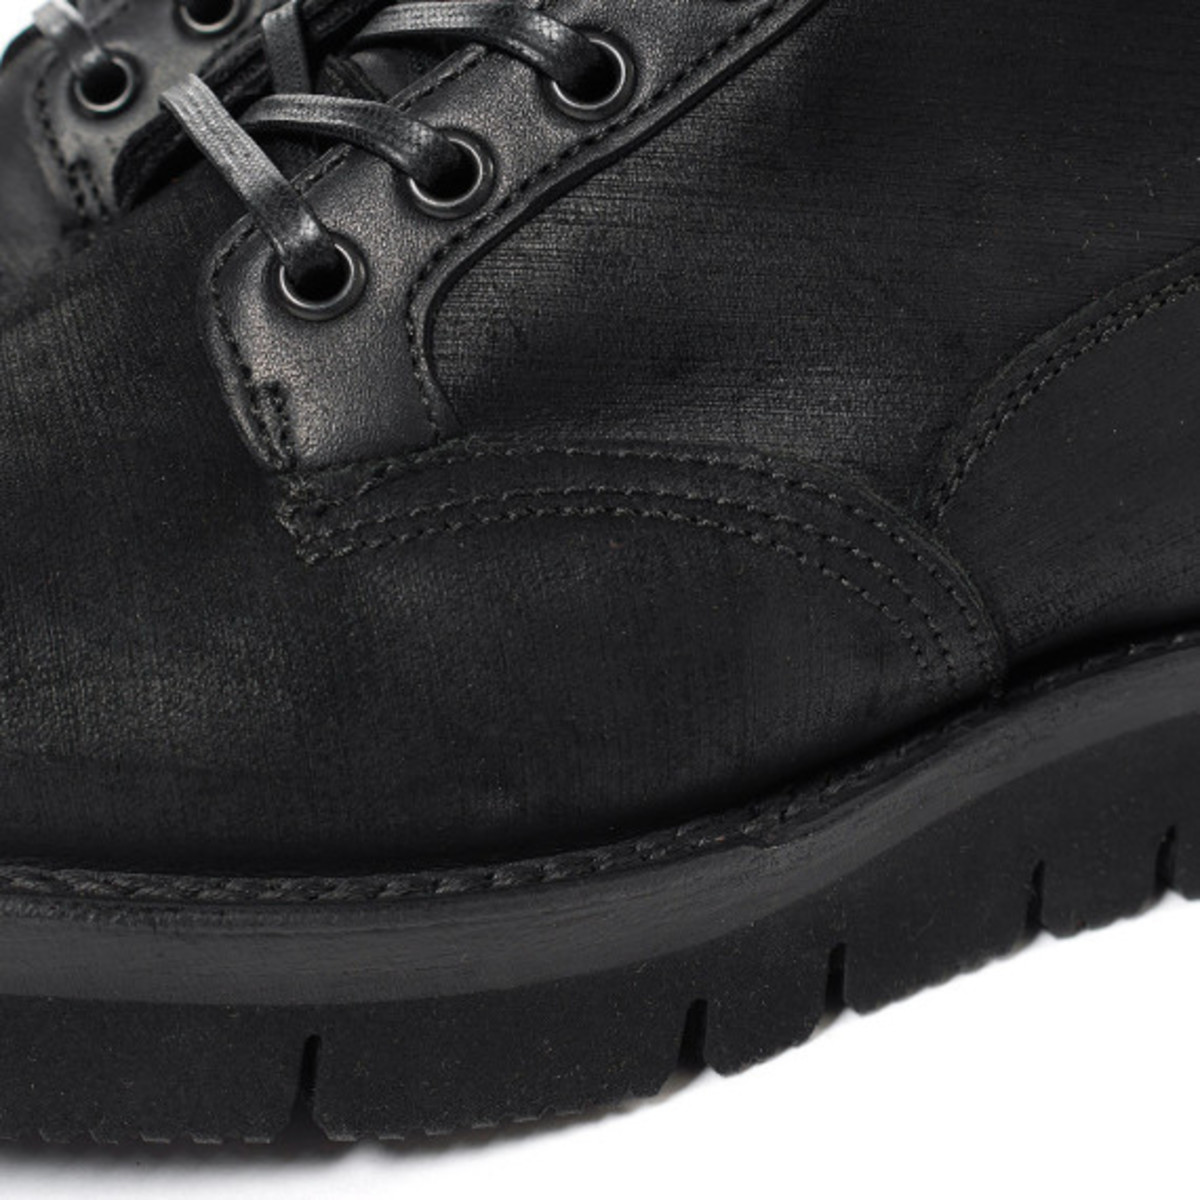 cypress-viberg-rubberized-scout-boot-08